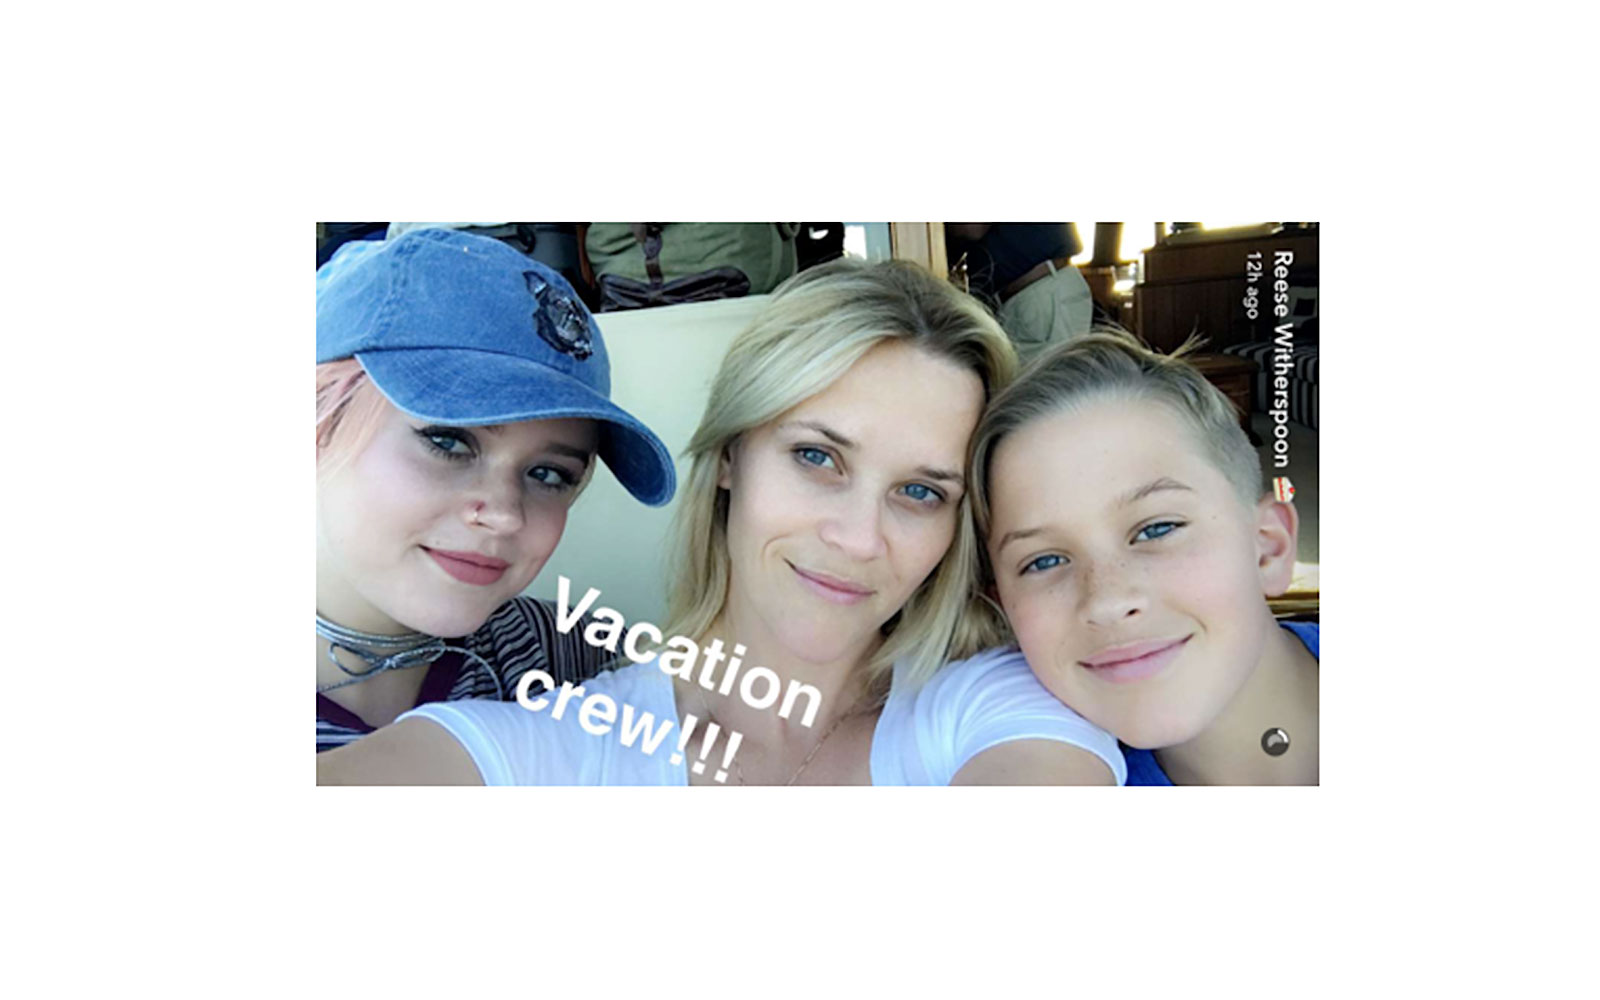 Reese Witherspoon on vacation with her kids